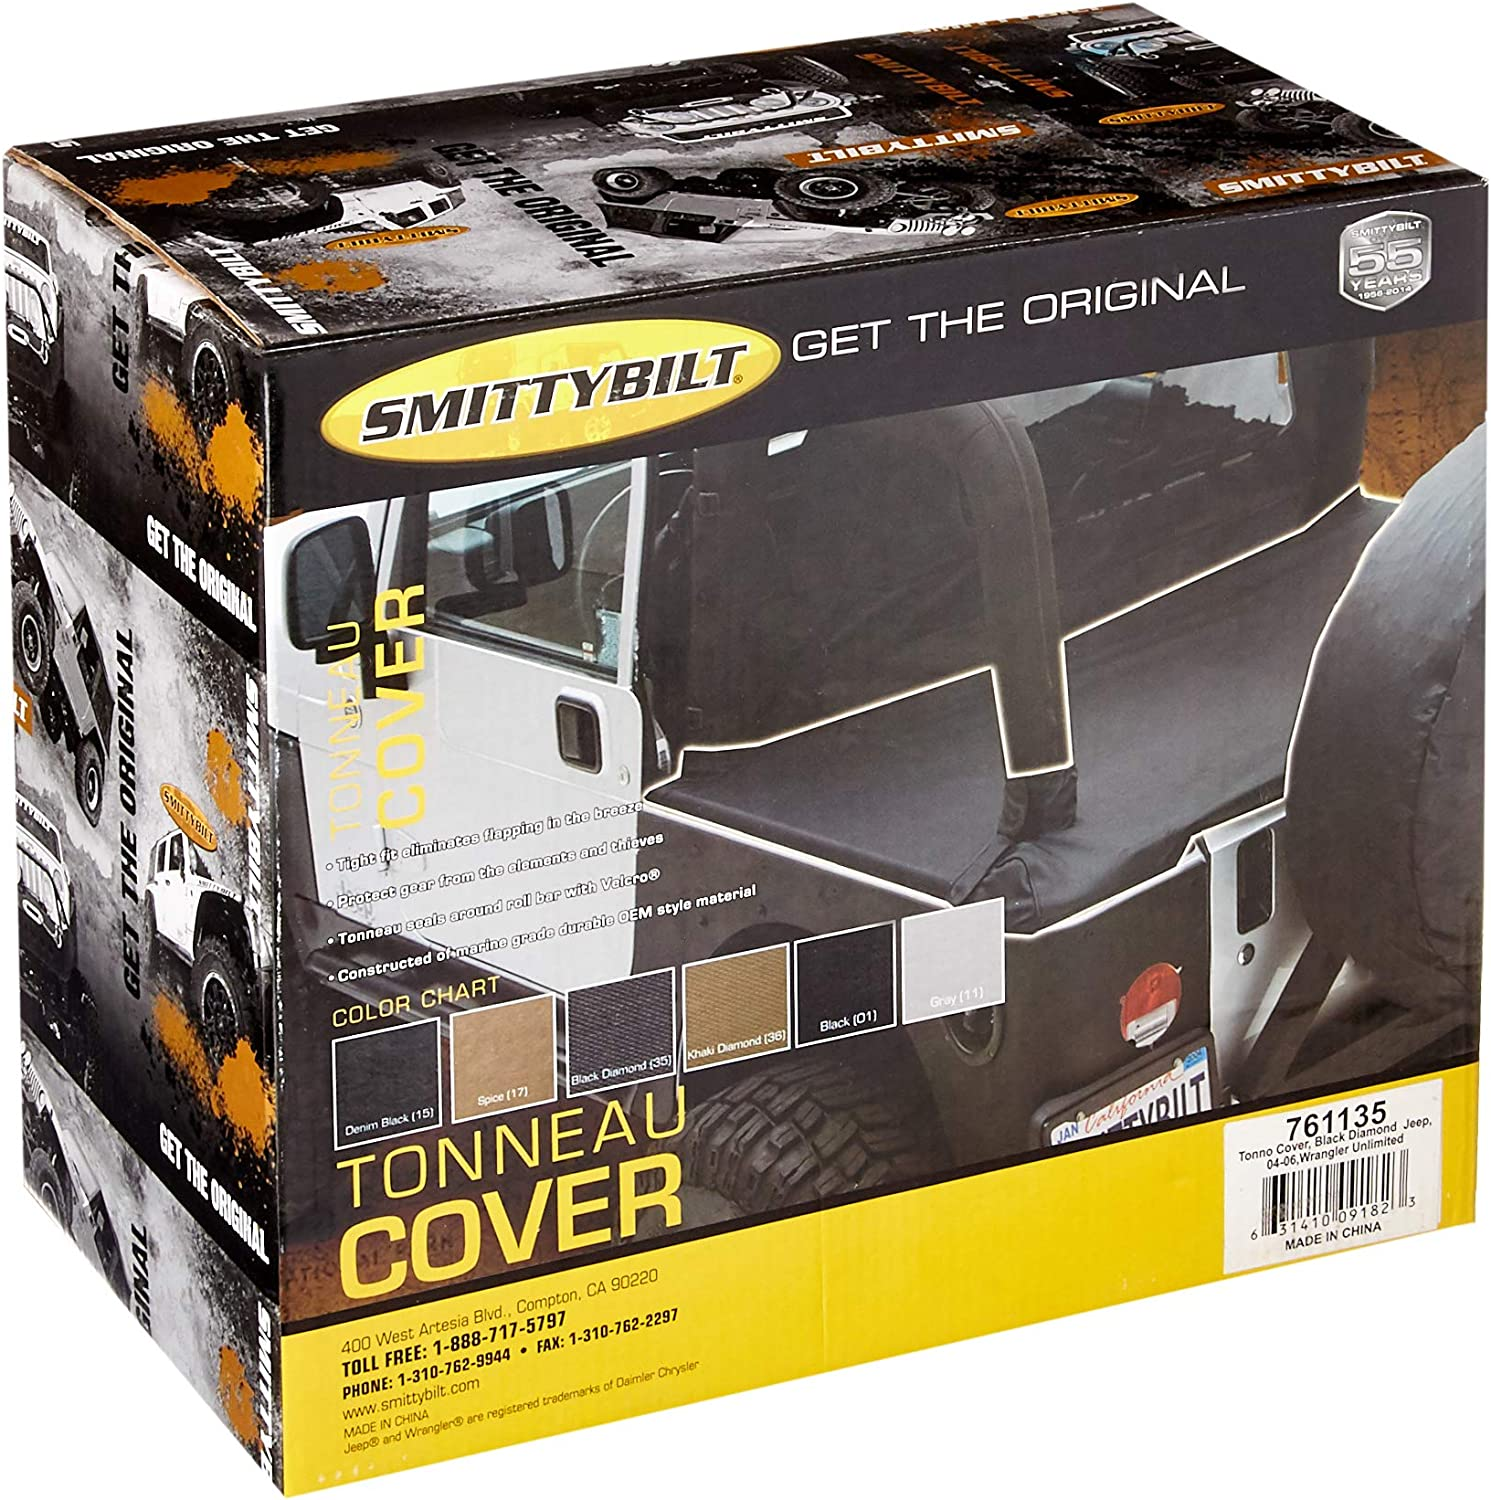 Smittybilt Tonneau Cover Black Diamond For 04-06 Jeep Wrangler LJ Unlimited